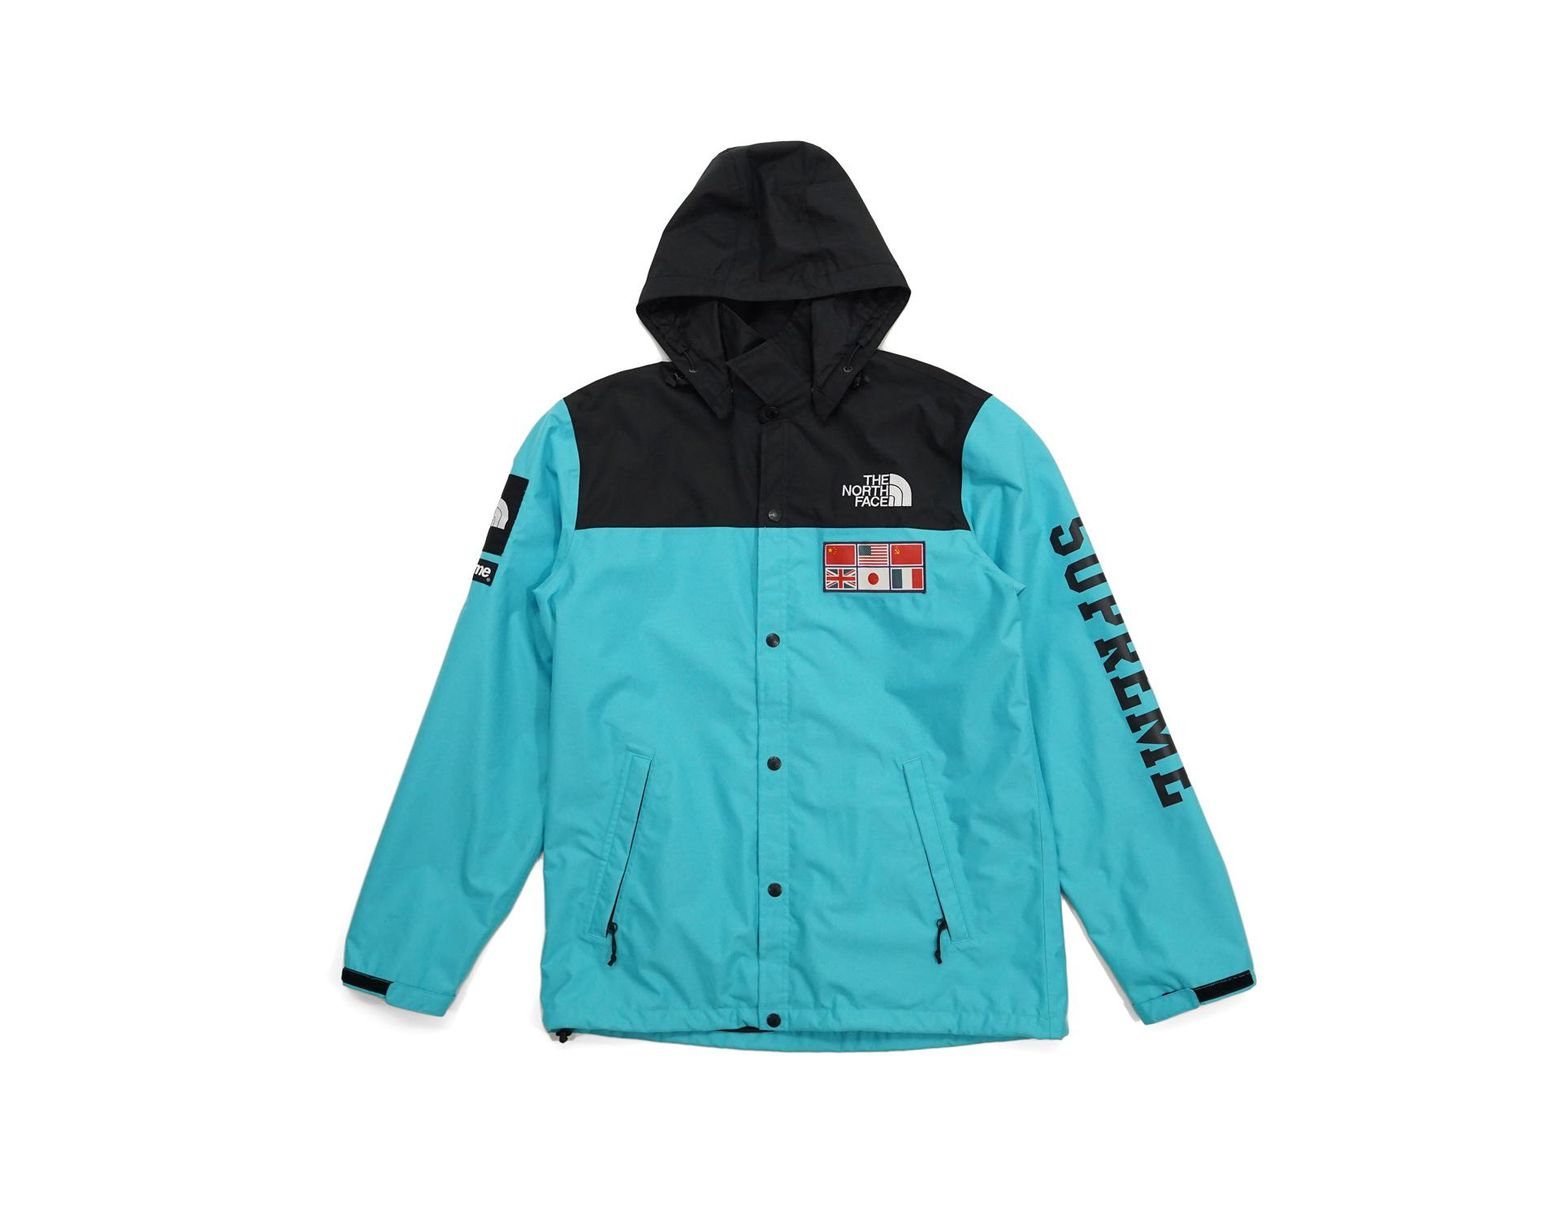 28cfcd0d Supreme The North Face Expedition Coaches Jacket Teal in Blue for Men - Lyst